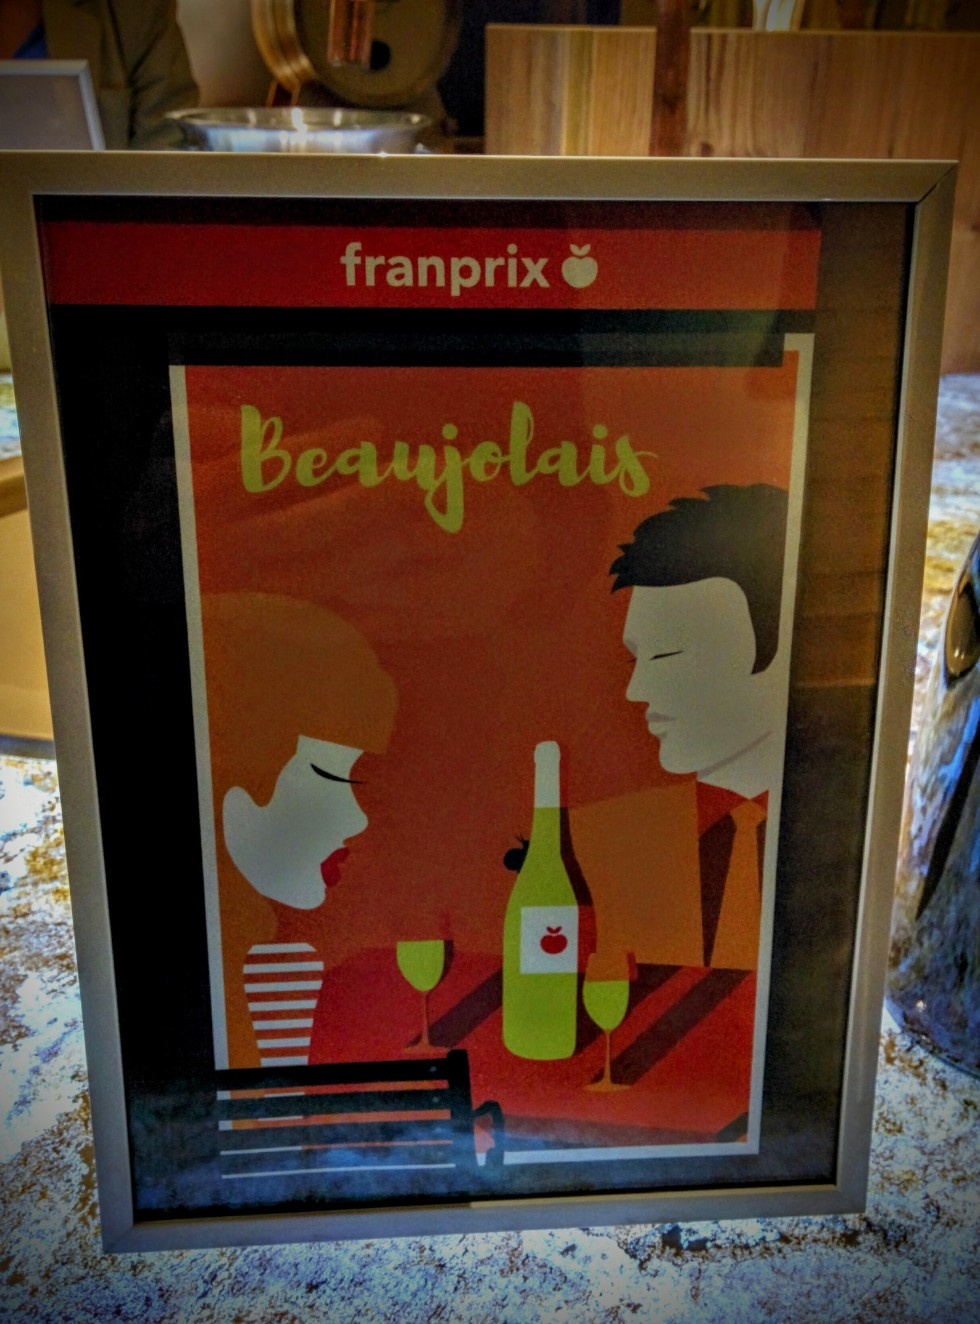 Beaujolais FAV 2016.jpg